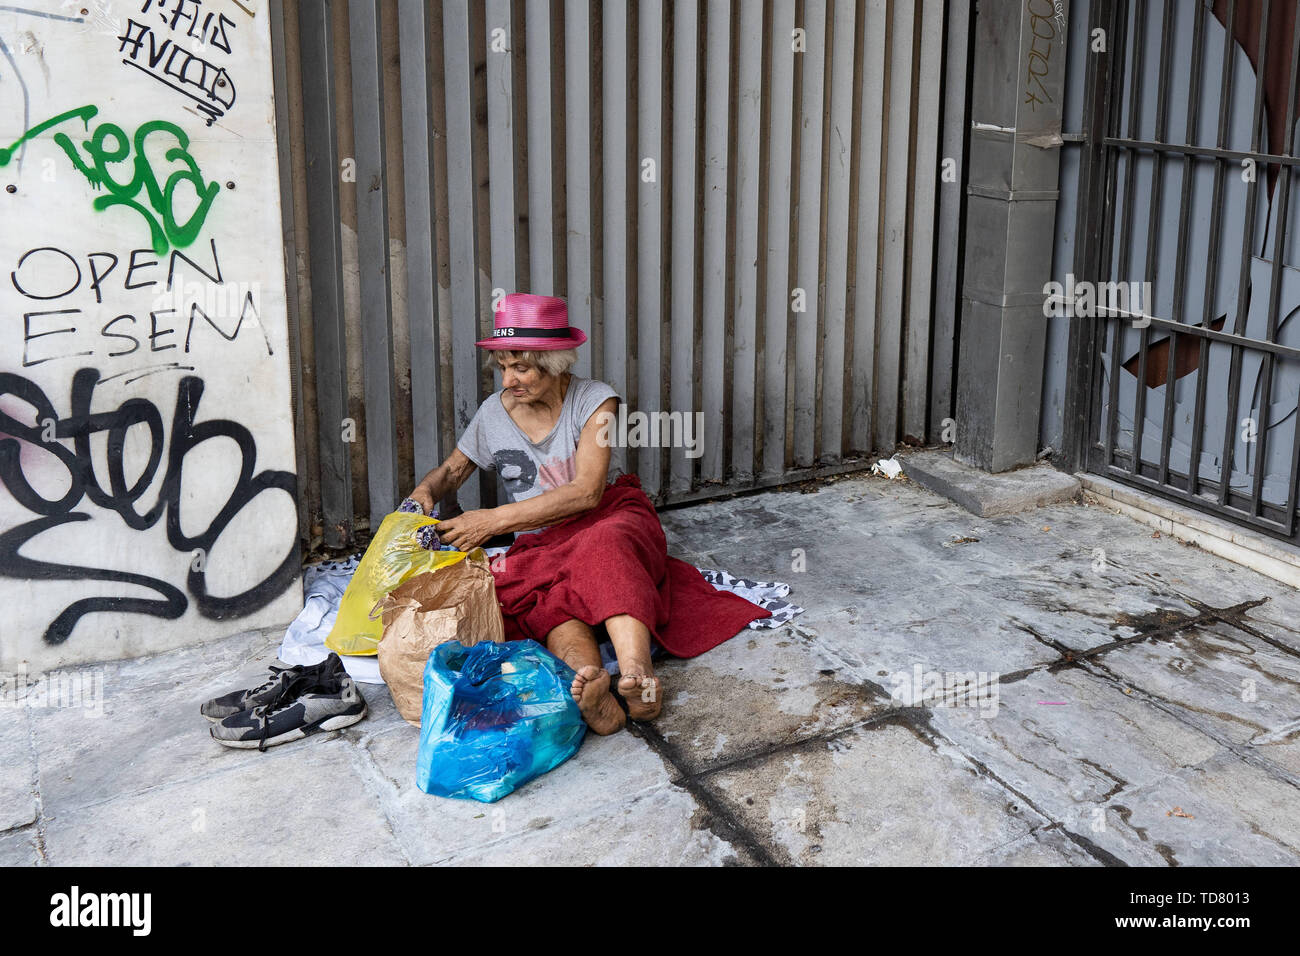 Athens, Athens, Greece  12th June, 2019  A homeless woman with